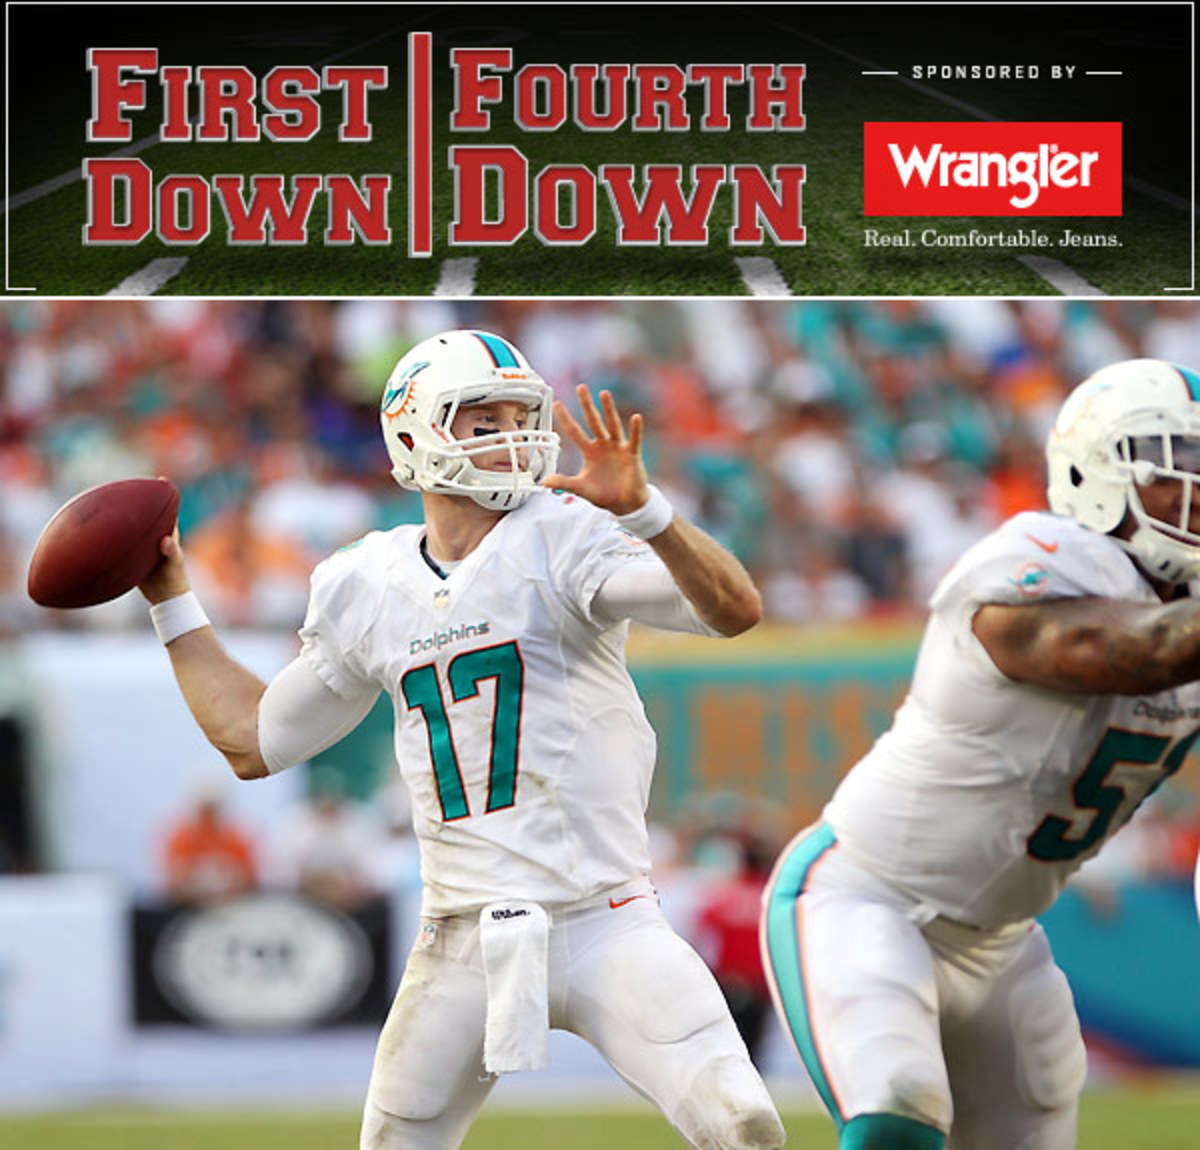 Ryan Tannehill has taken a big step forward this season and has the Dolphins sitting 3-0.